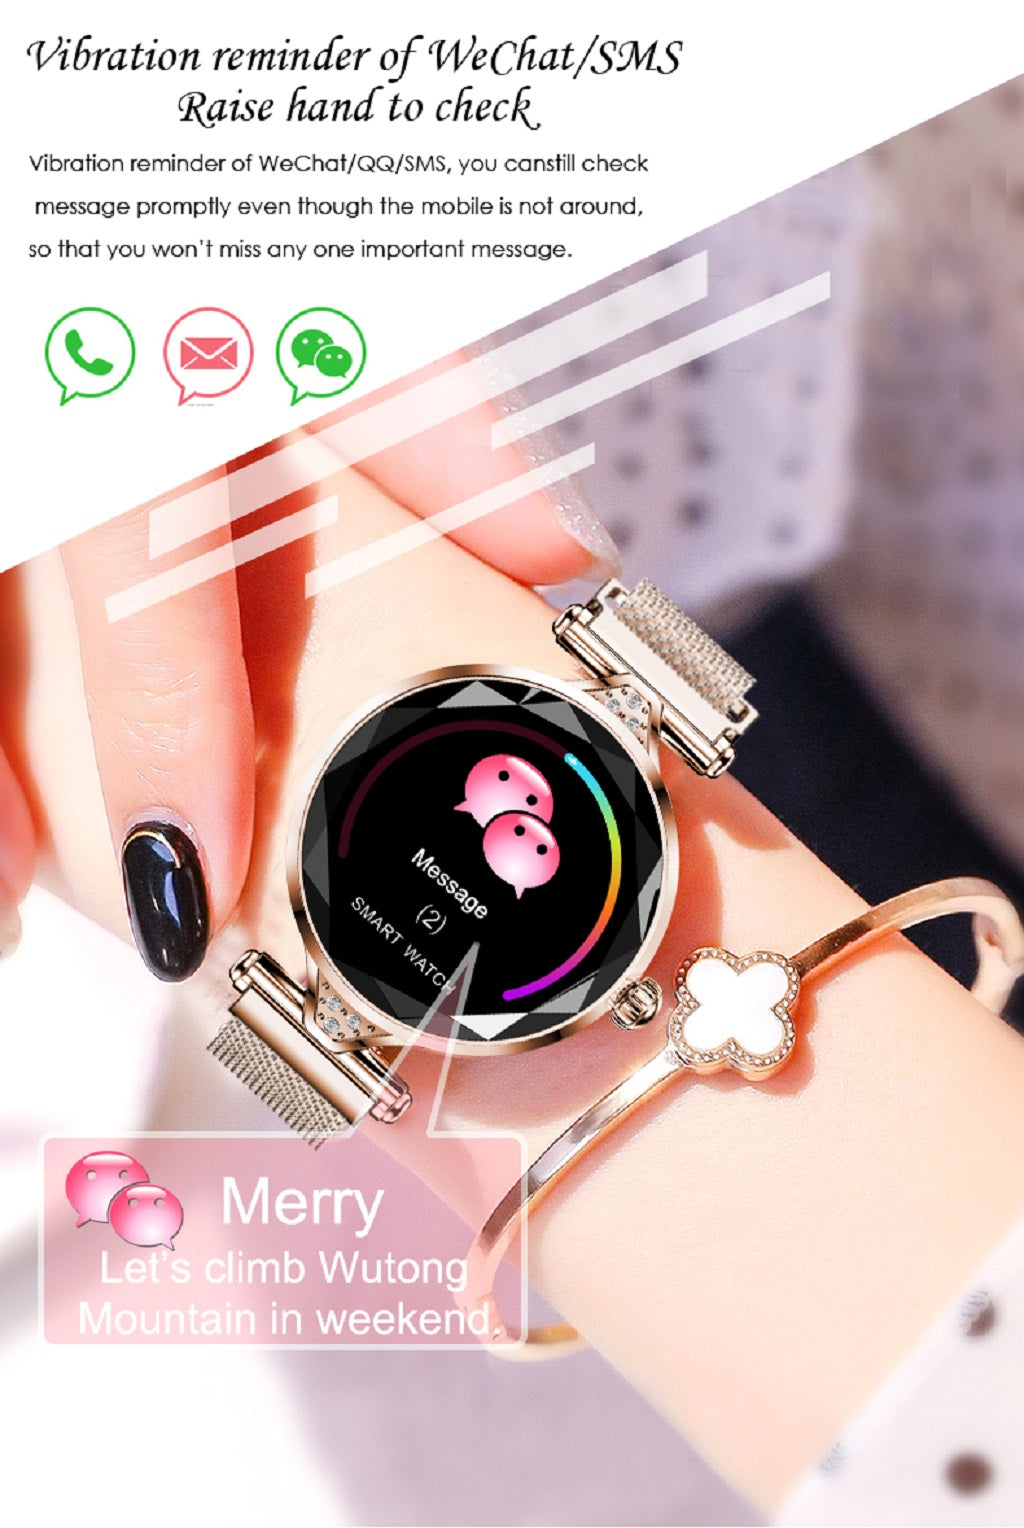 6-Women Smart Watch Fashion Ladies Watches Female Heart Rate Monitor Blood Pressure Fitness Activity Tracker H2 H1 Smartwatch